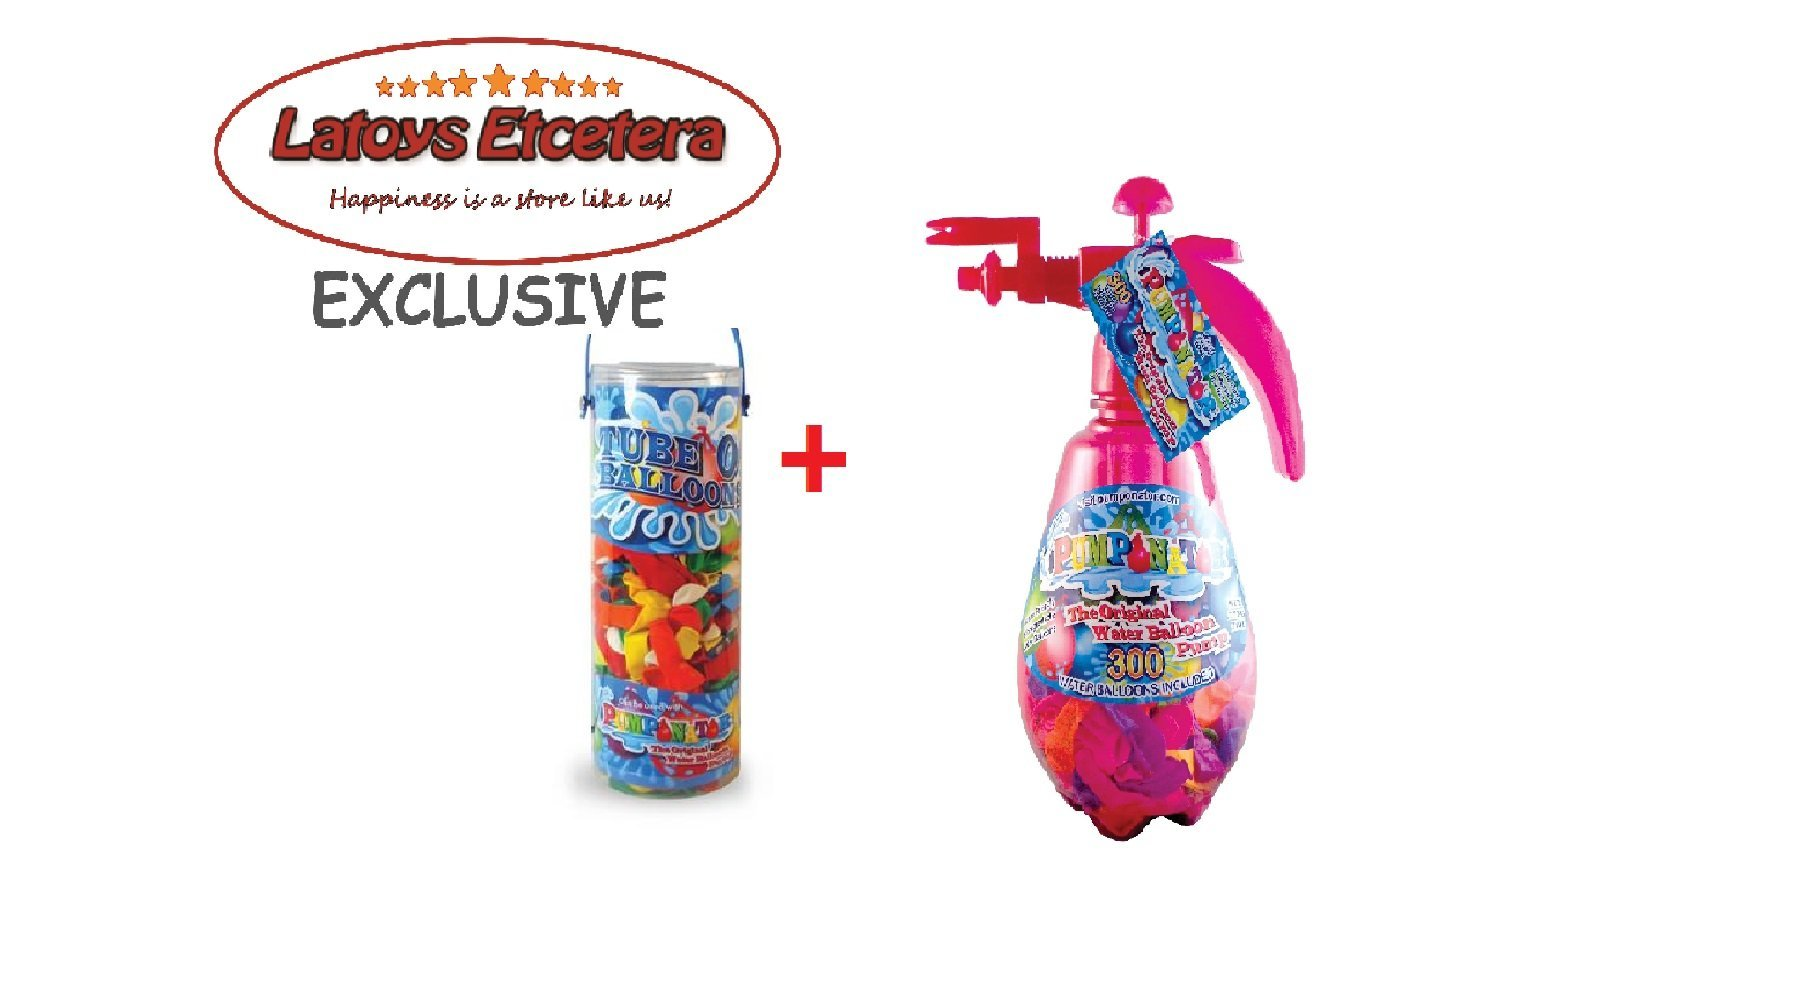 Pumponator Water Balloon Pump (Pink) and Tube o' Balloons Gift Bundle Set by Pumponator